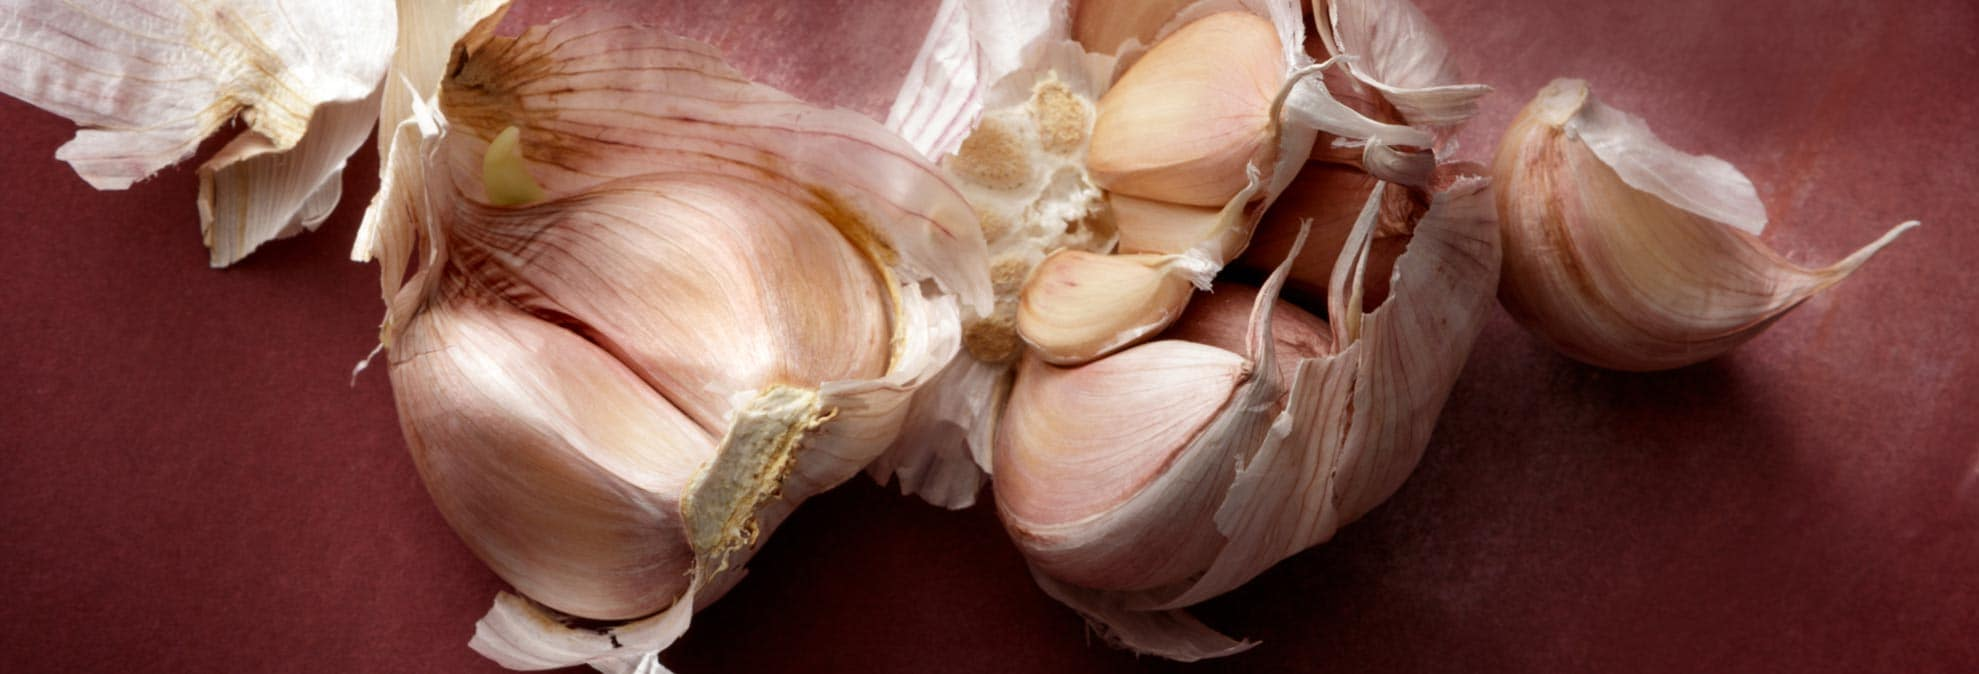 The Health Benefits Of Garlic Consumer Reports